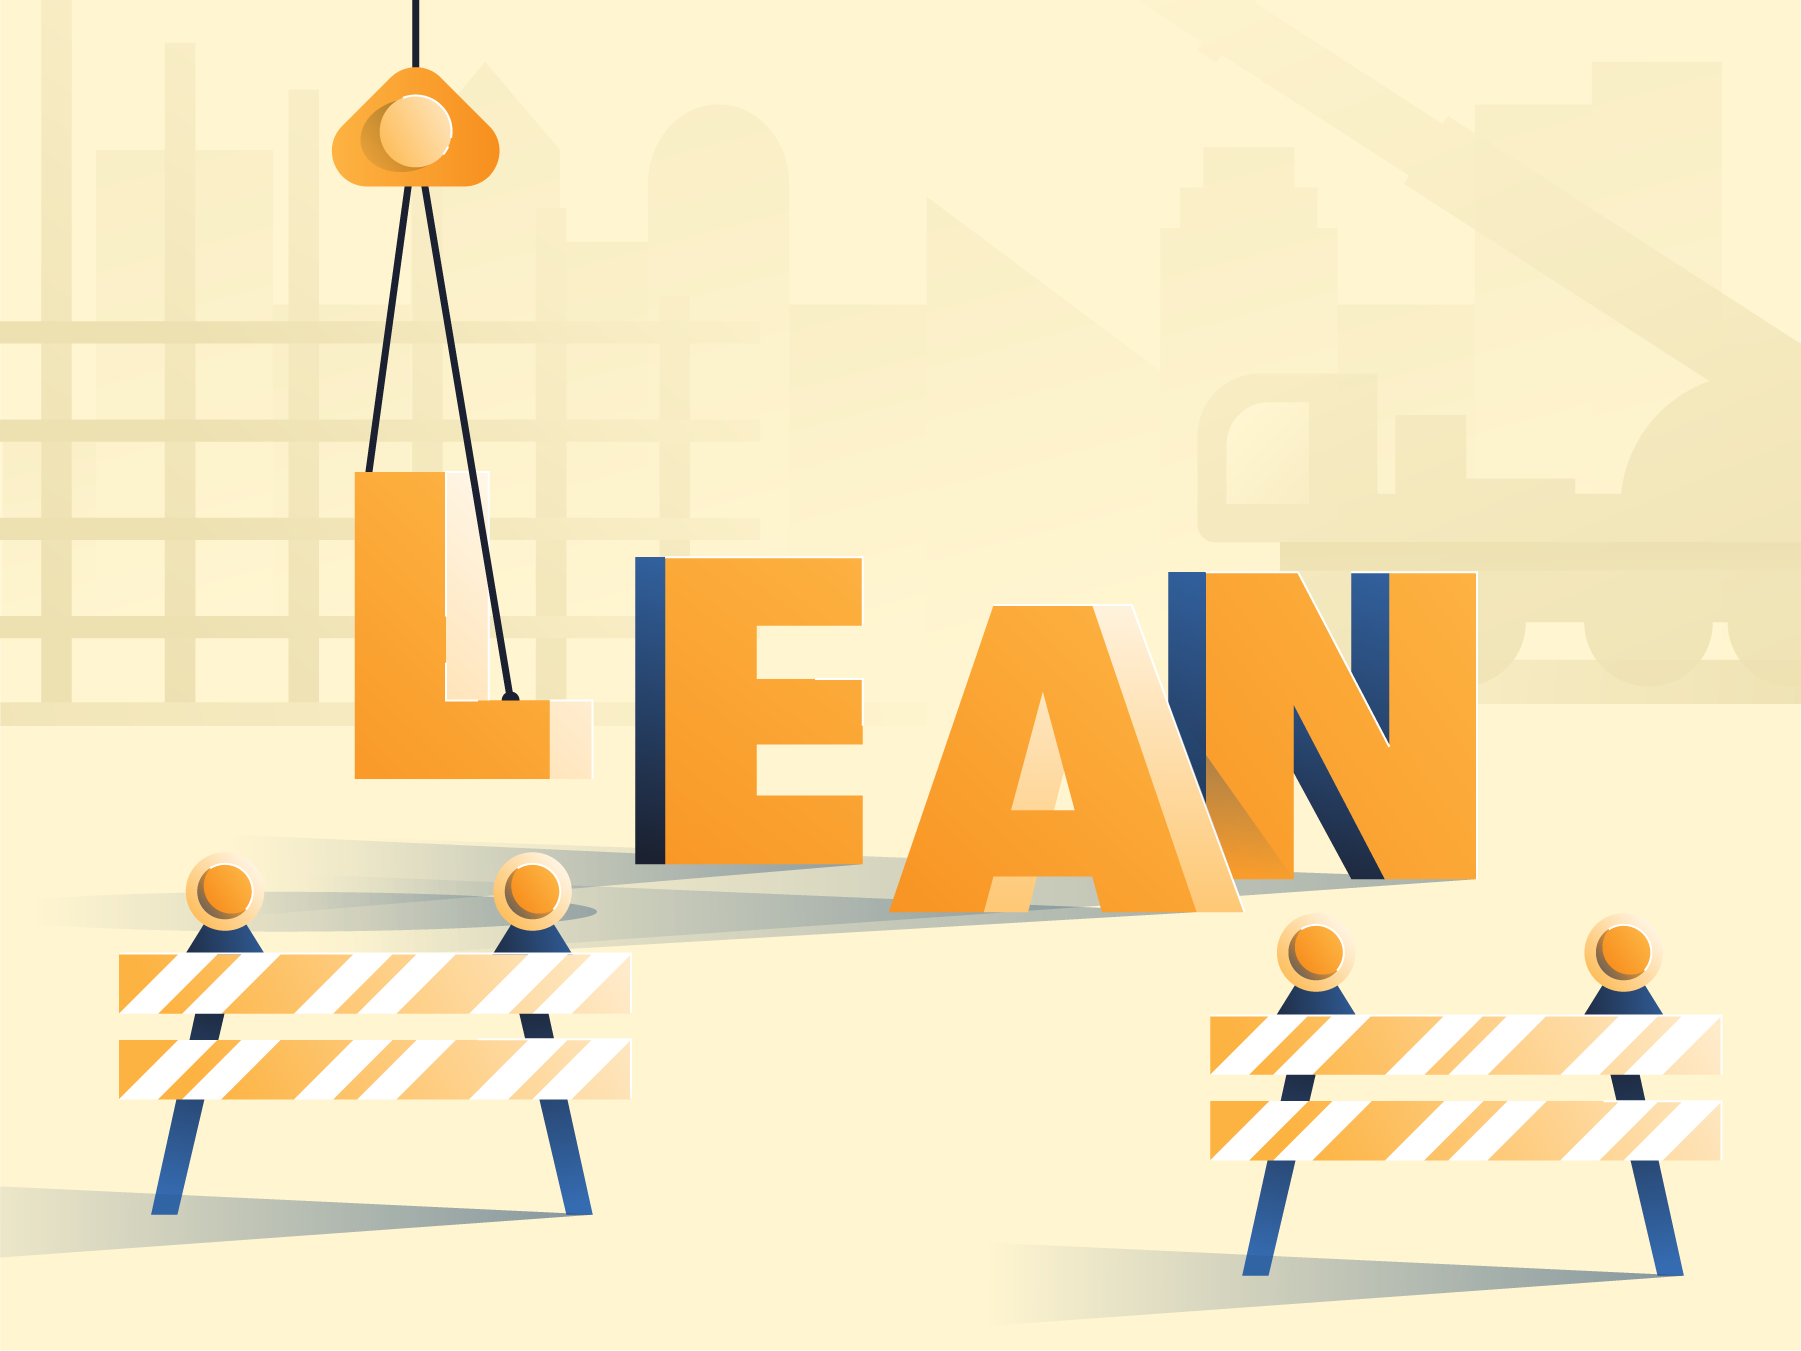 Lean Construction: Principles Shaping the Future of Construction